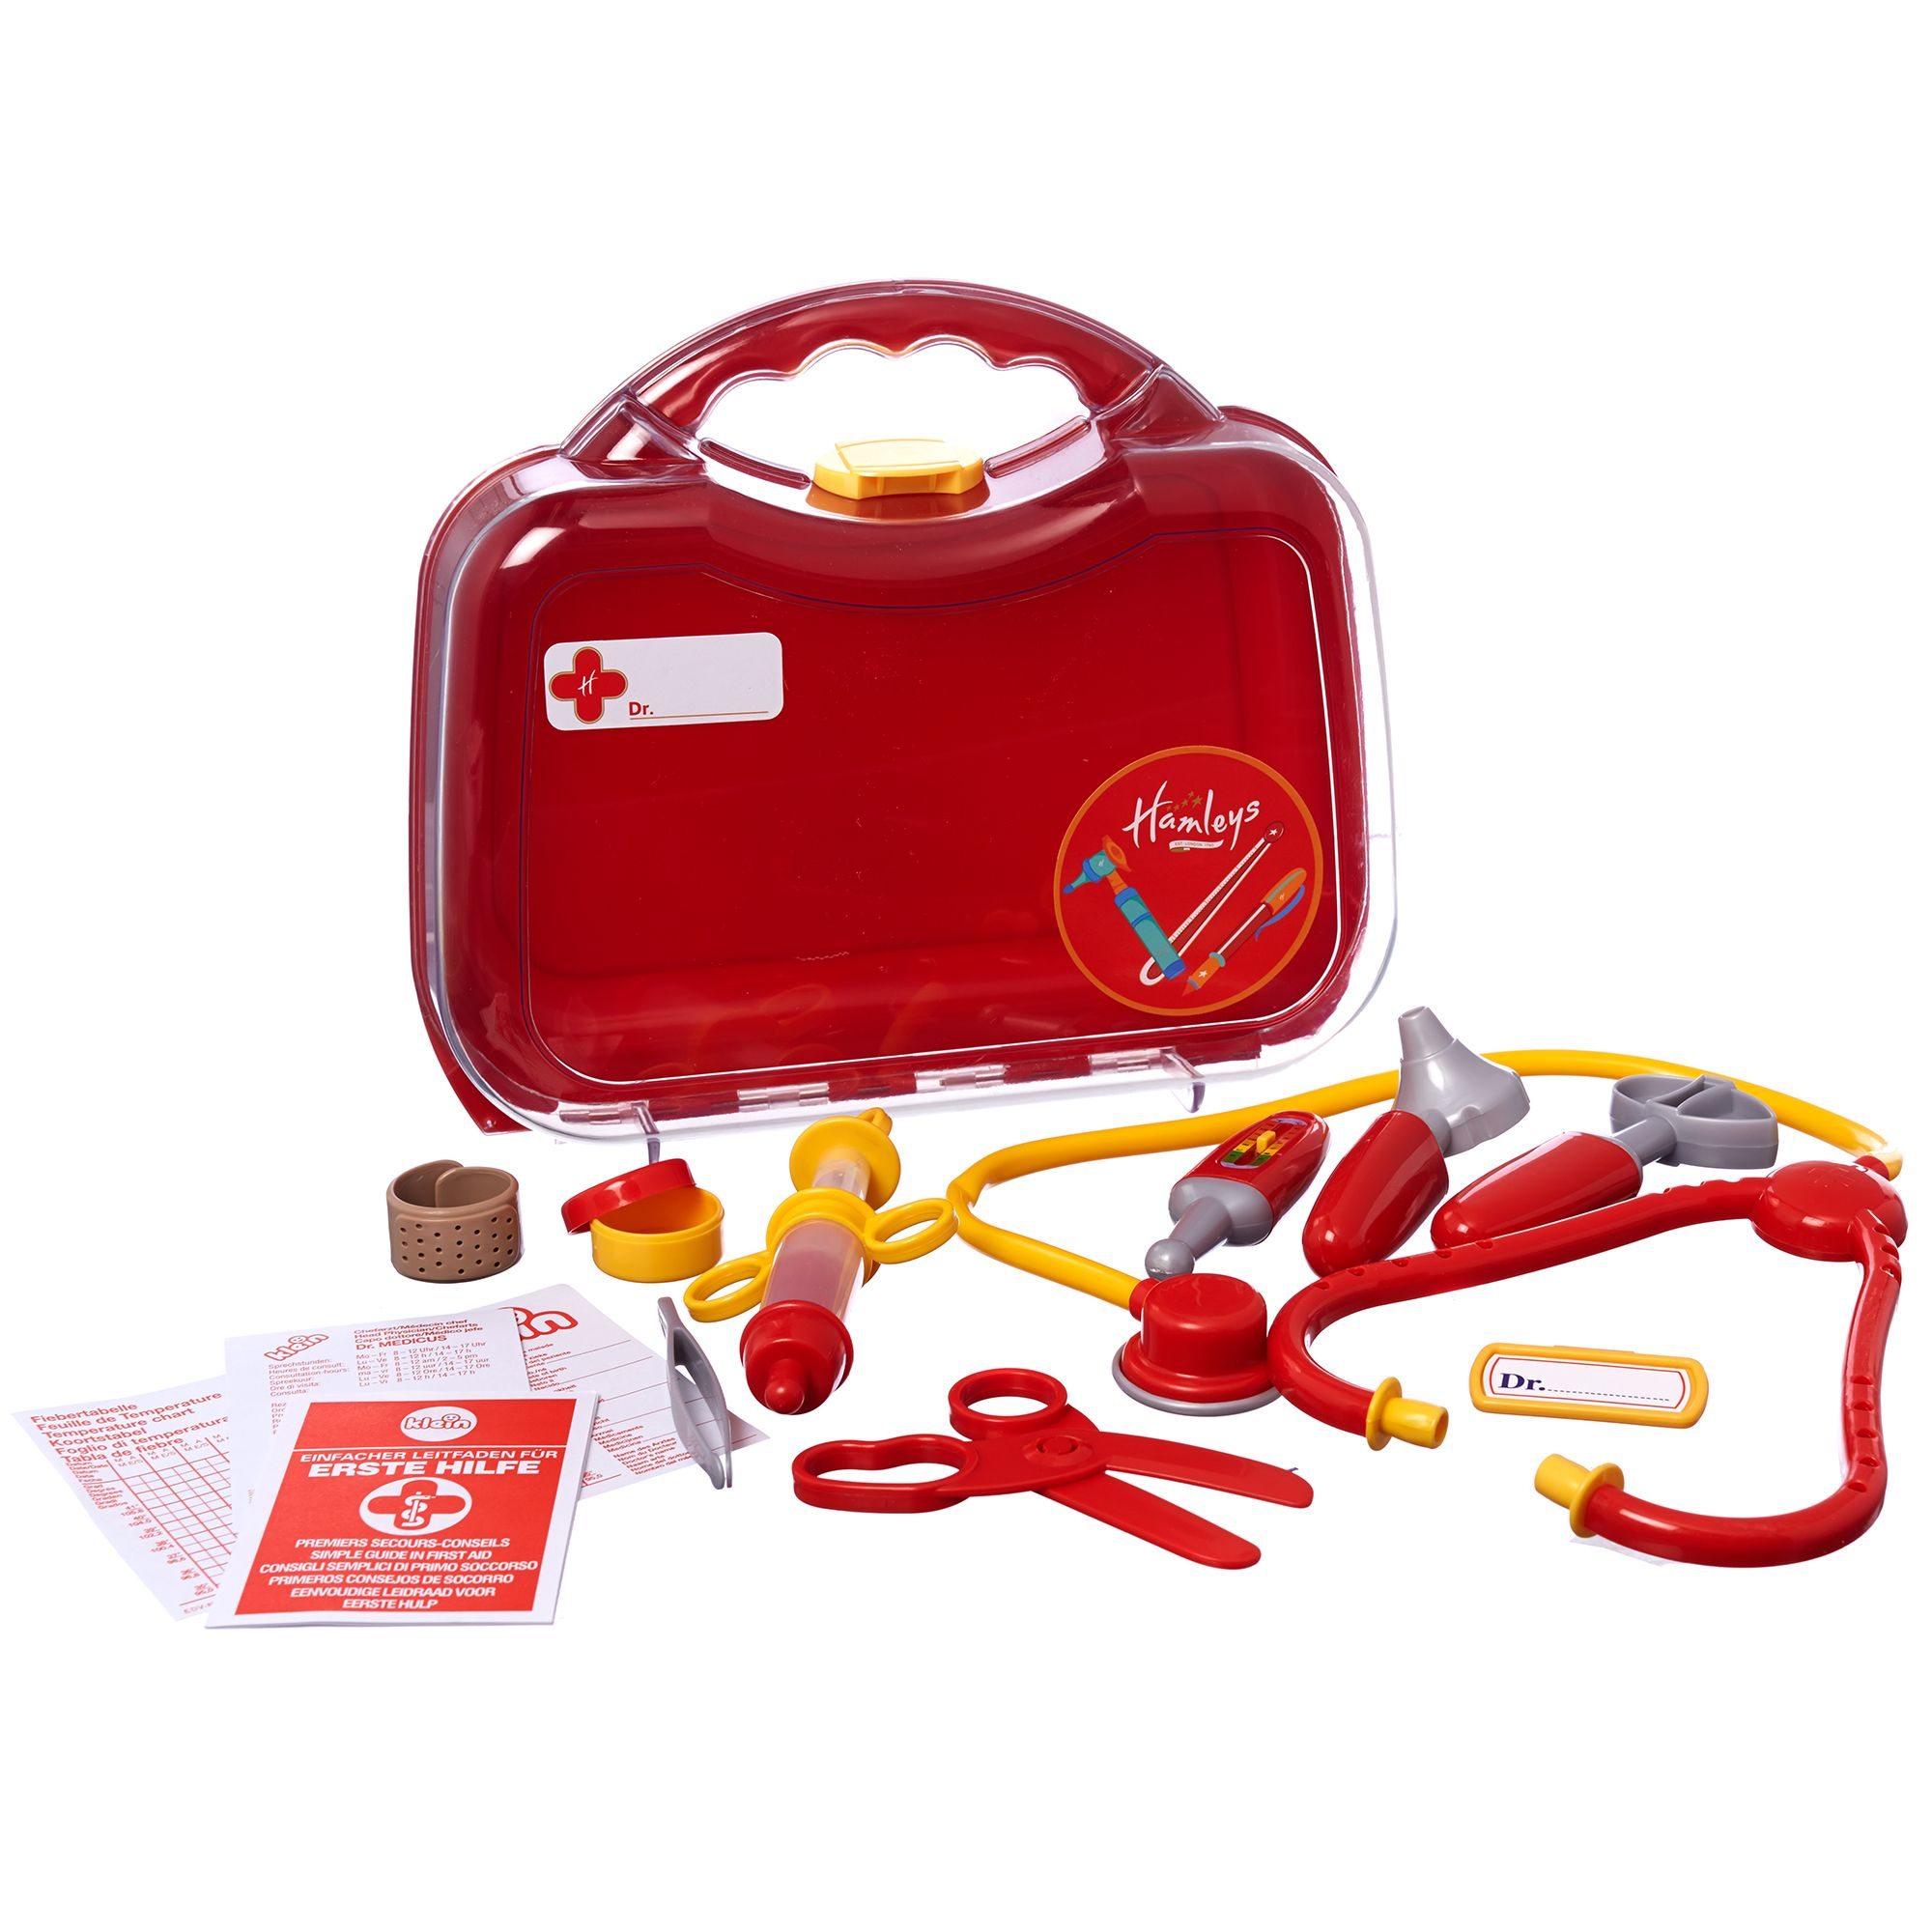 Hamleys Doctor Kit